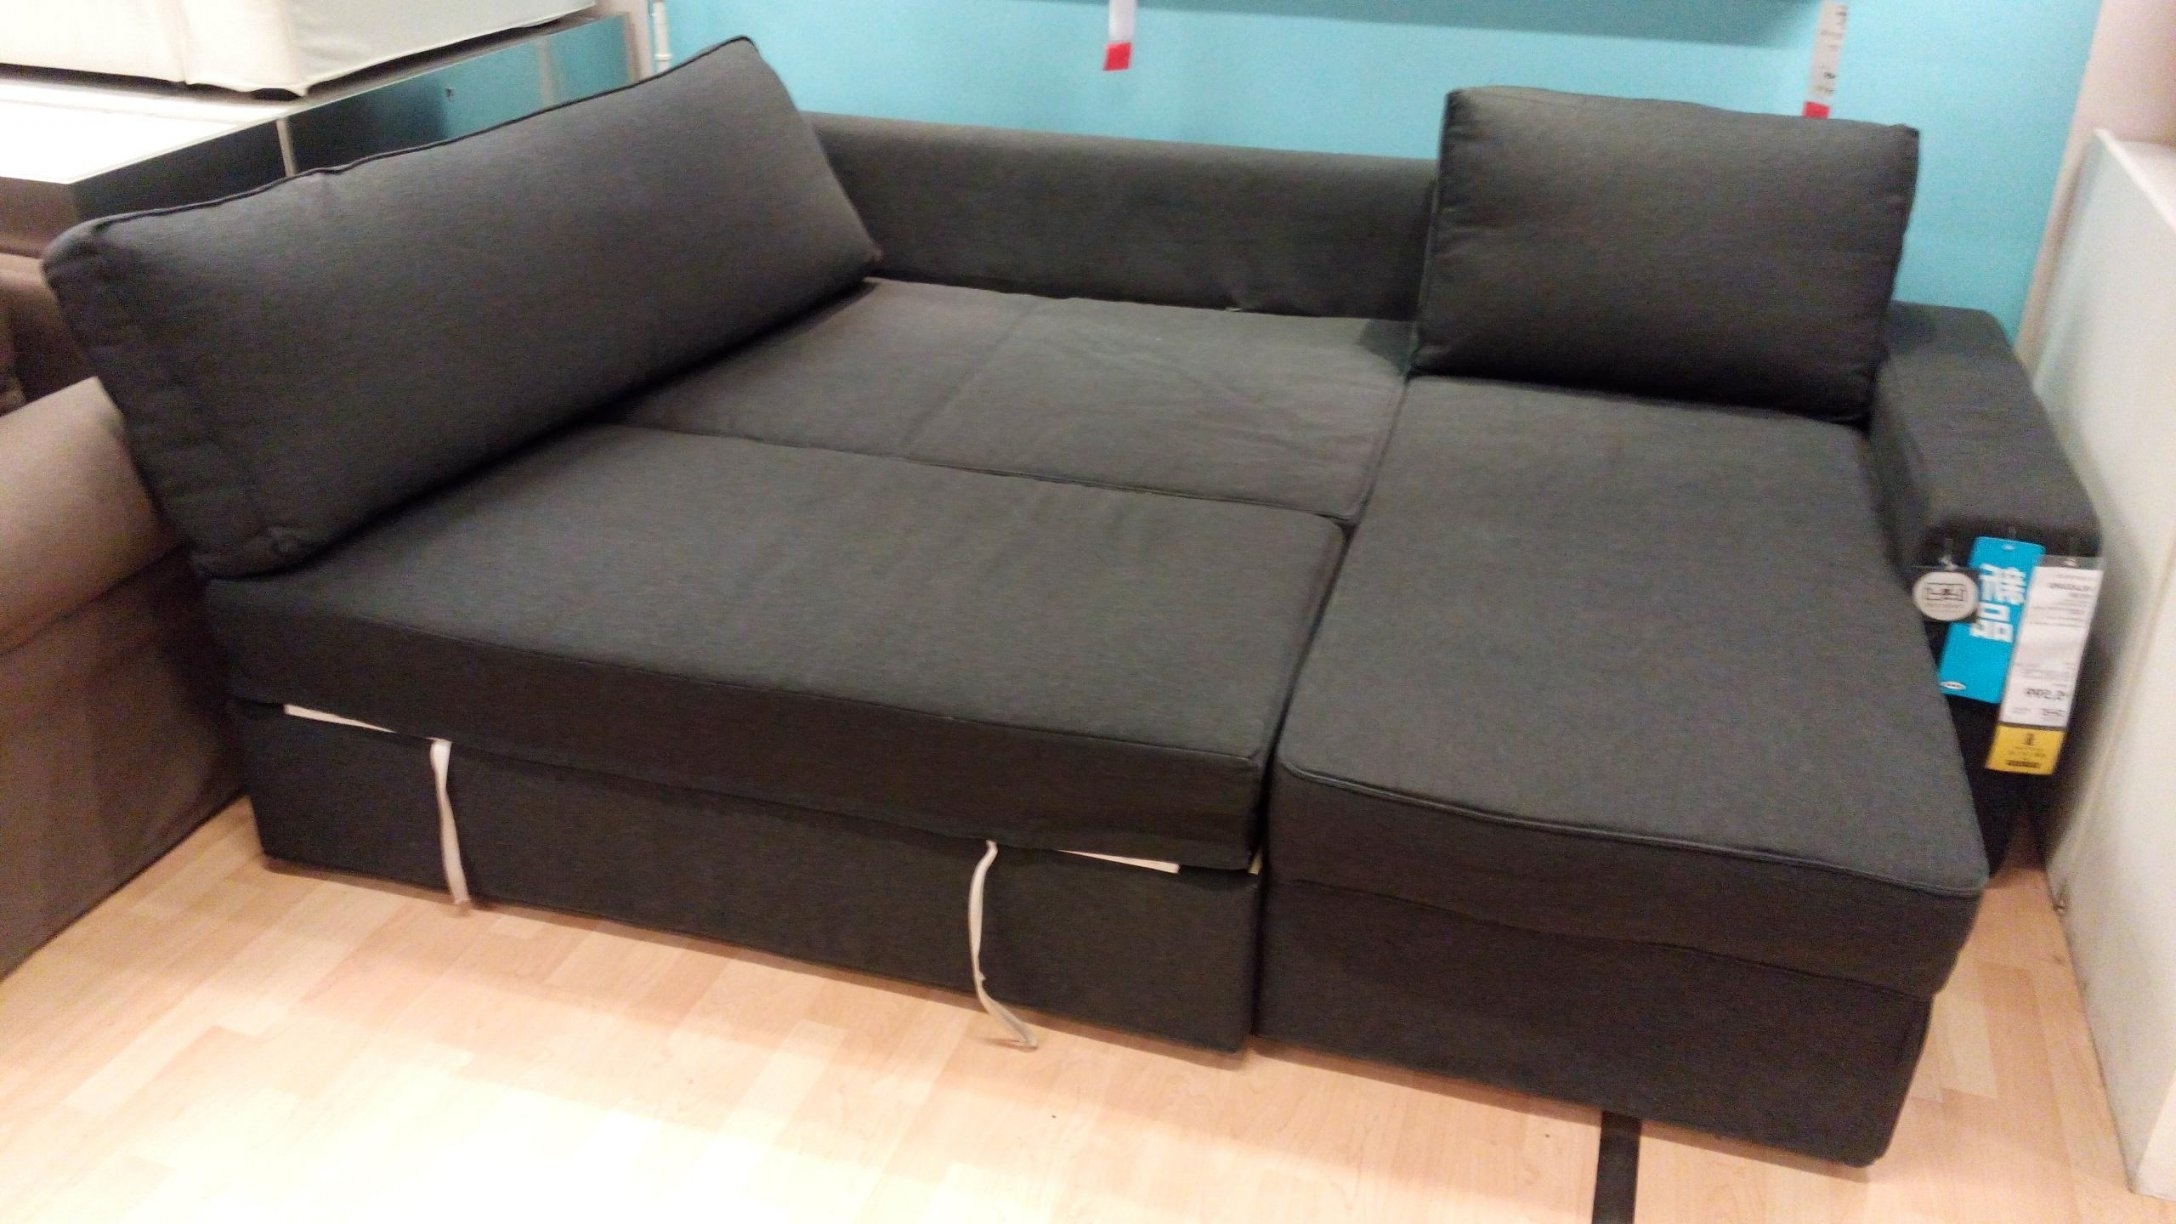 Sofa Ideas Intended For Pertaining To Trendy Chaise Beds (View 5 of 15)